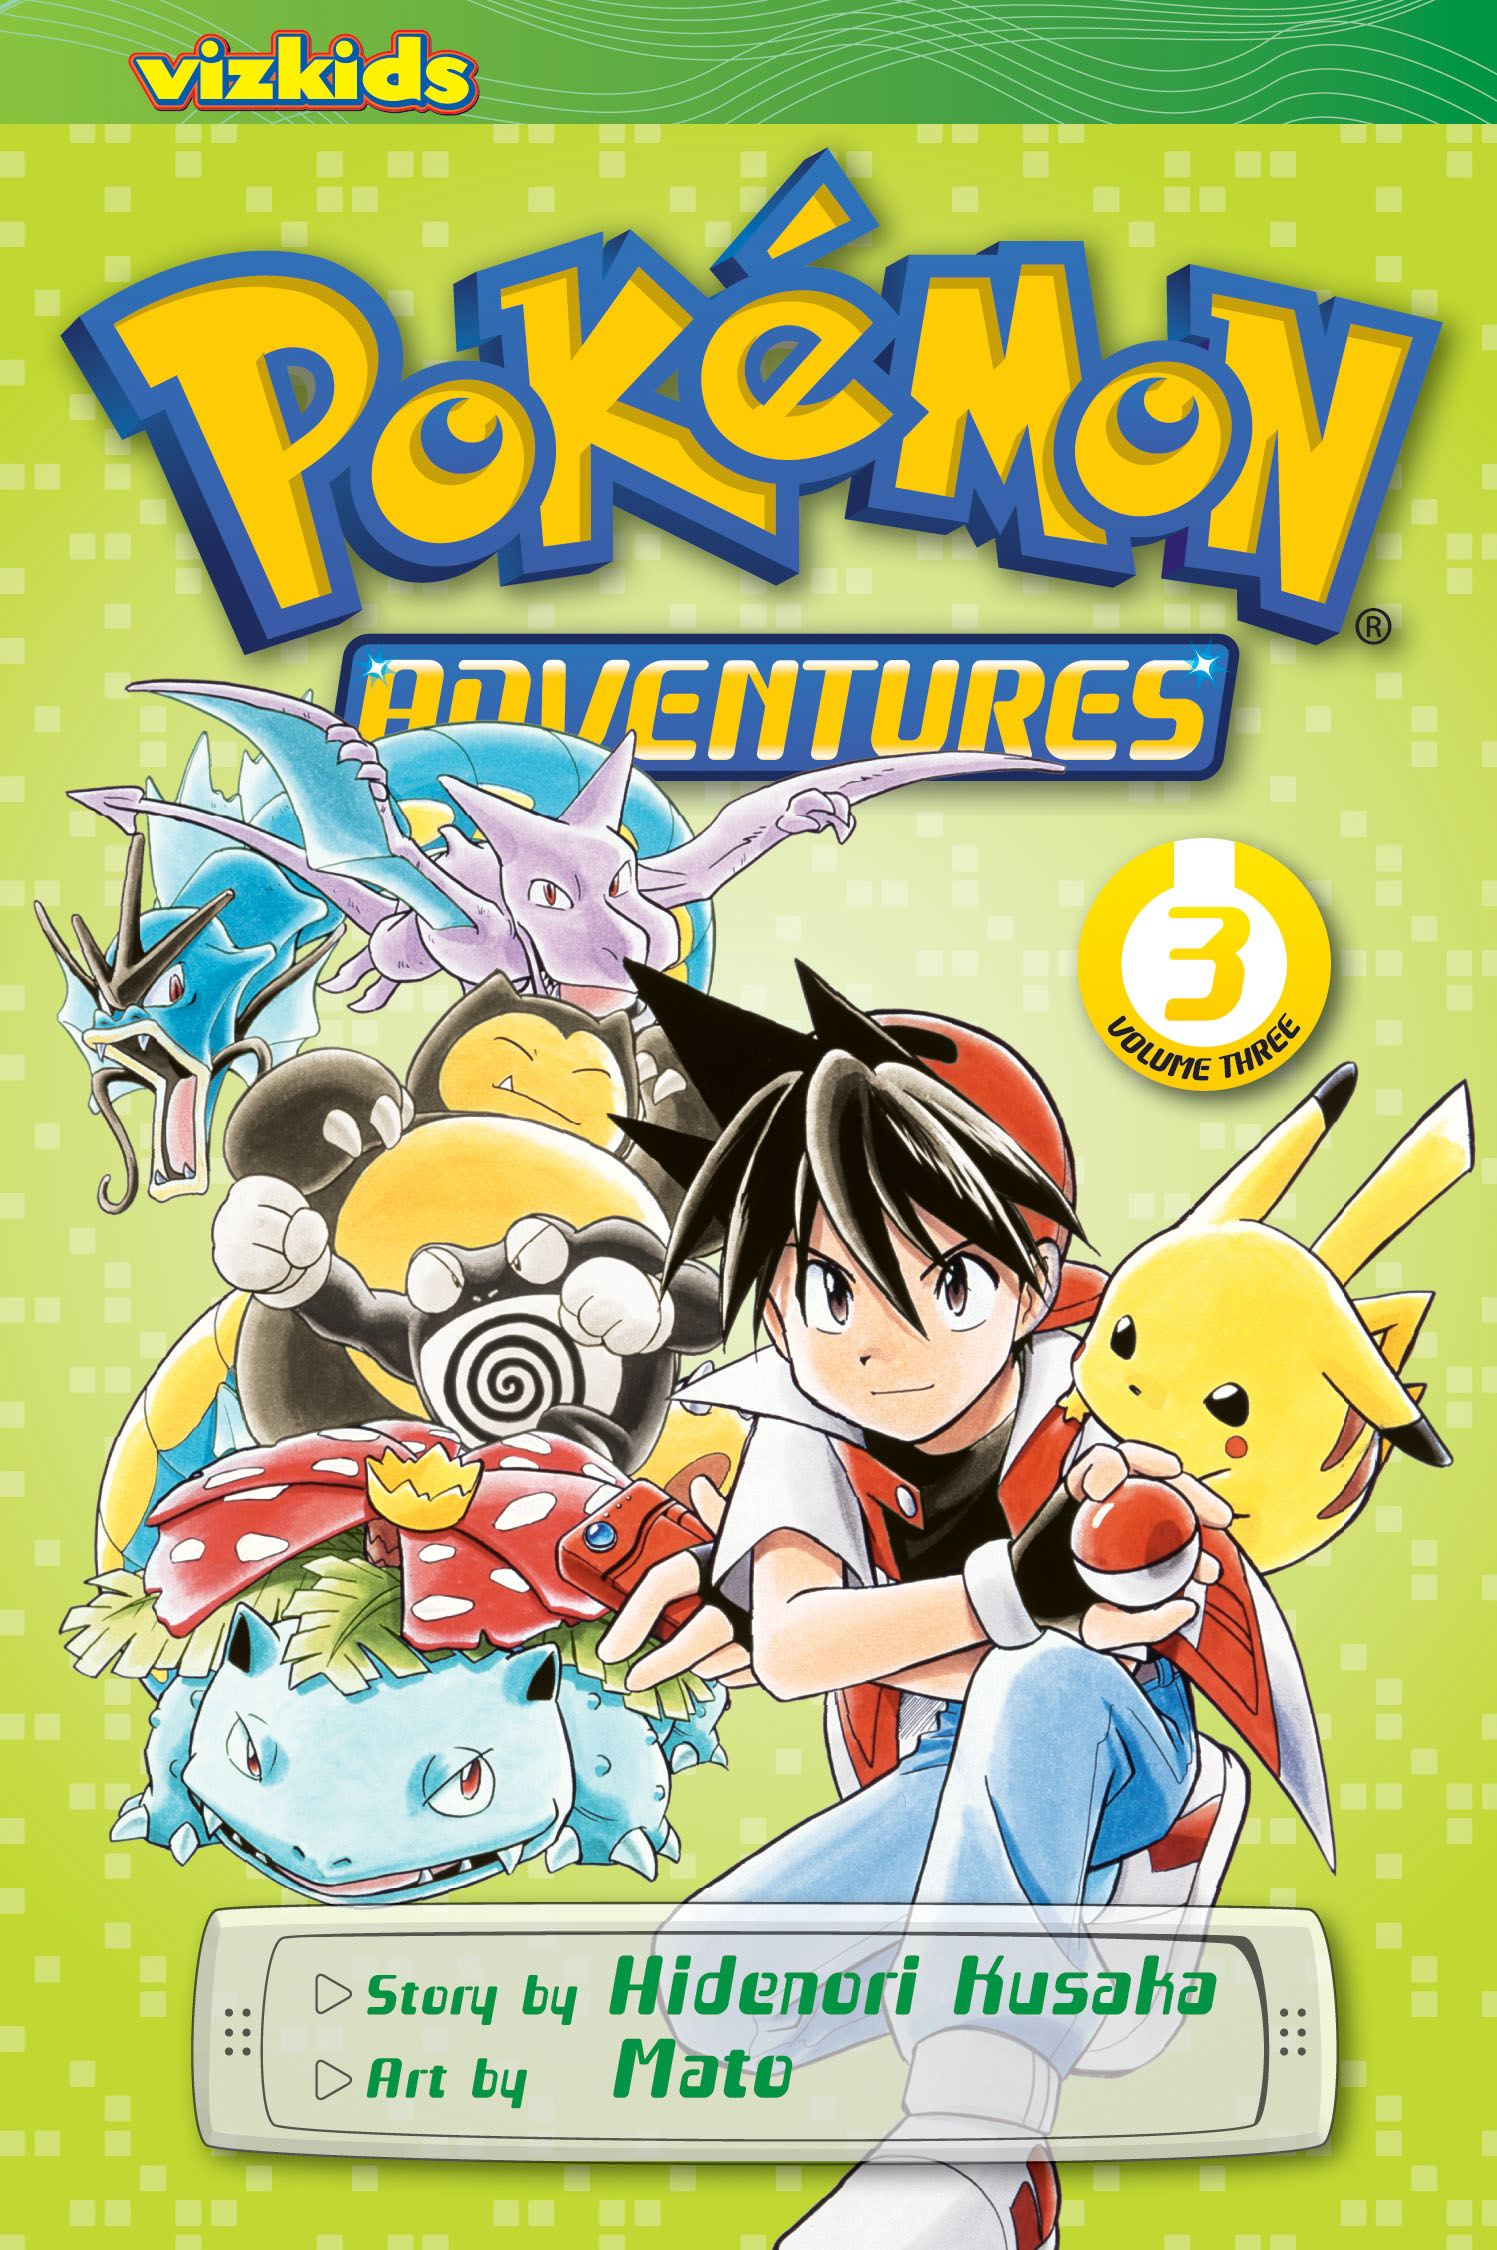 Pokemon adventures vol 3 2nd edition 9781421530567 hr